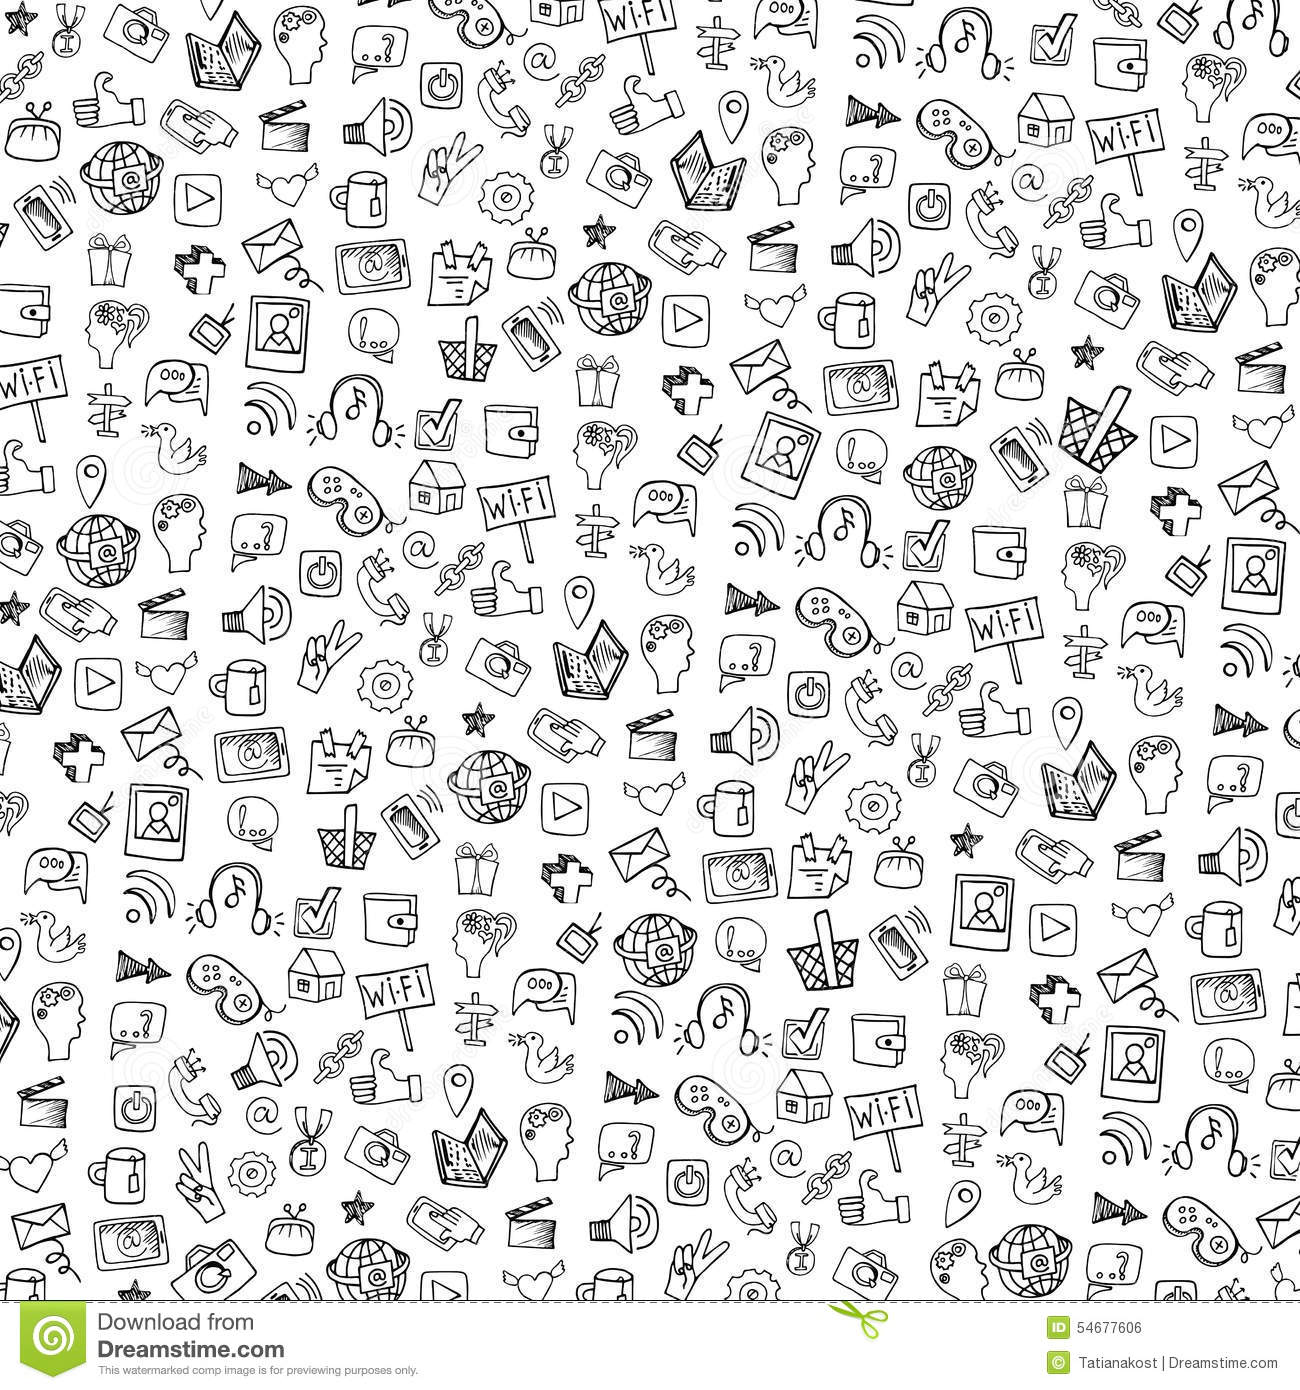 Social Media Icon PatternbackgroundDoodle